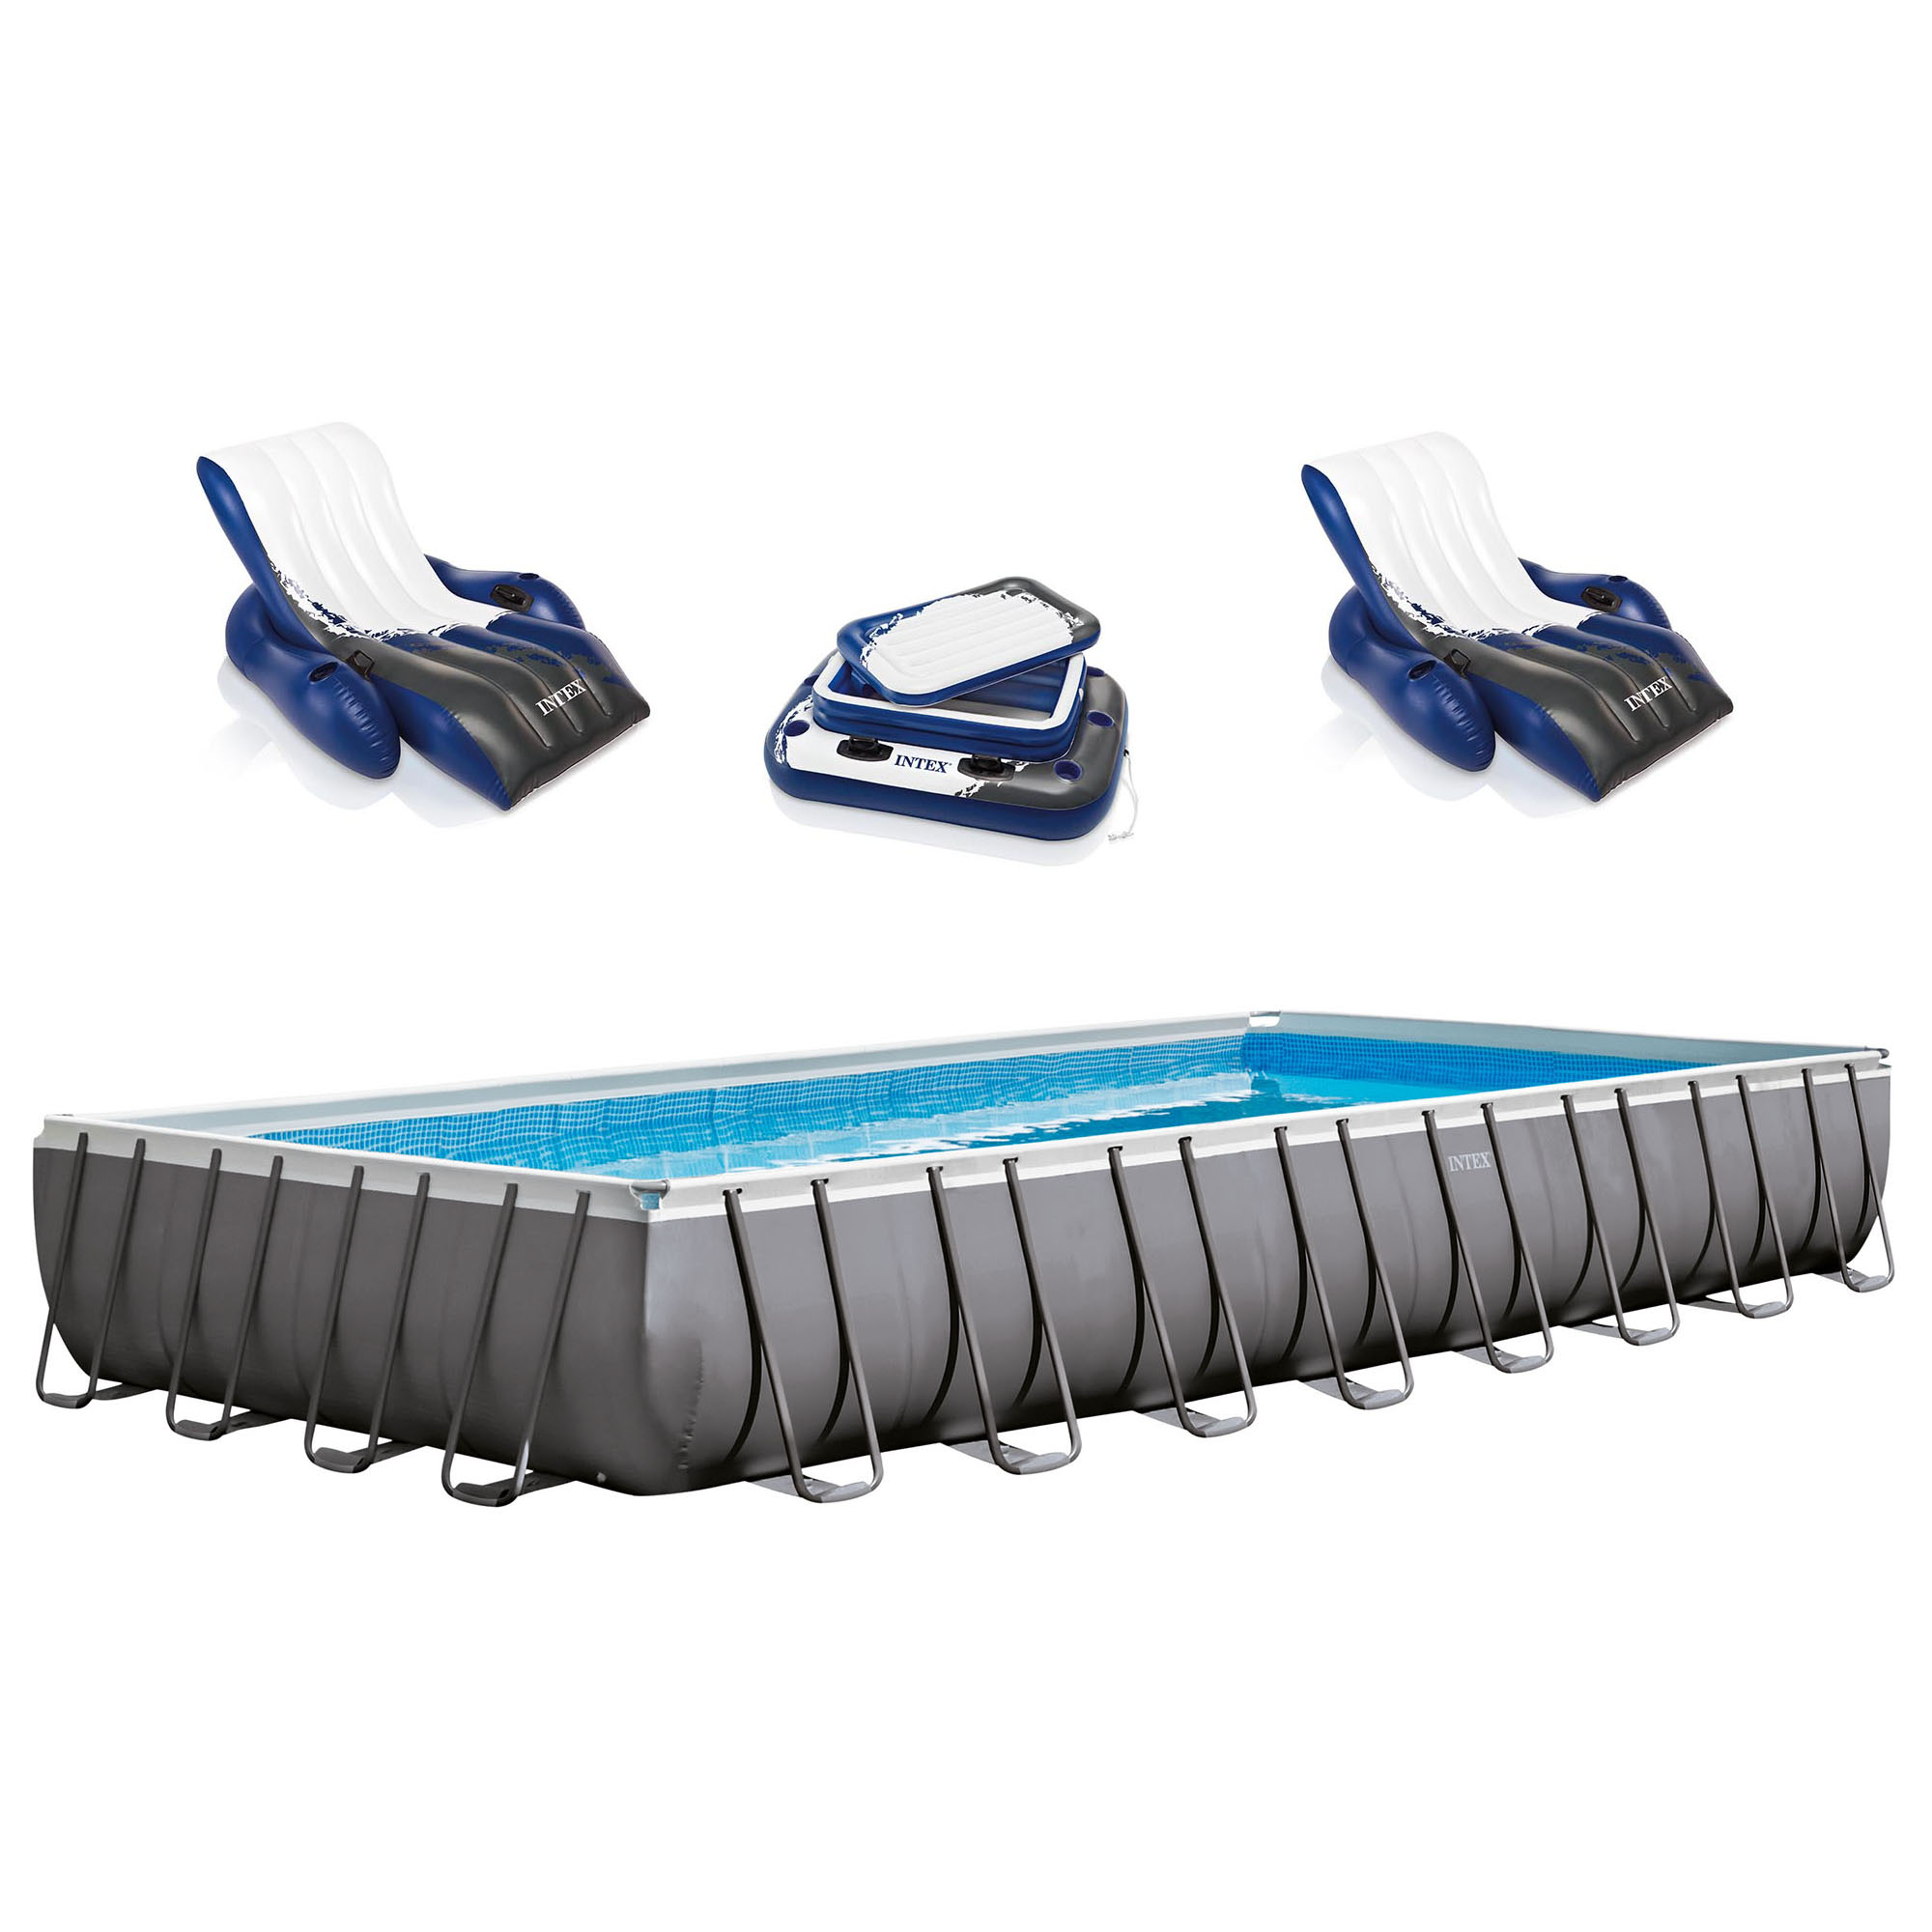 "Click here to buy Intex 32' x 16' x 52"" Ultra Frame Rectangular Swimming Pool Set 